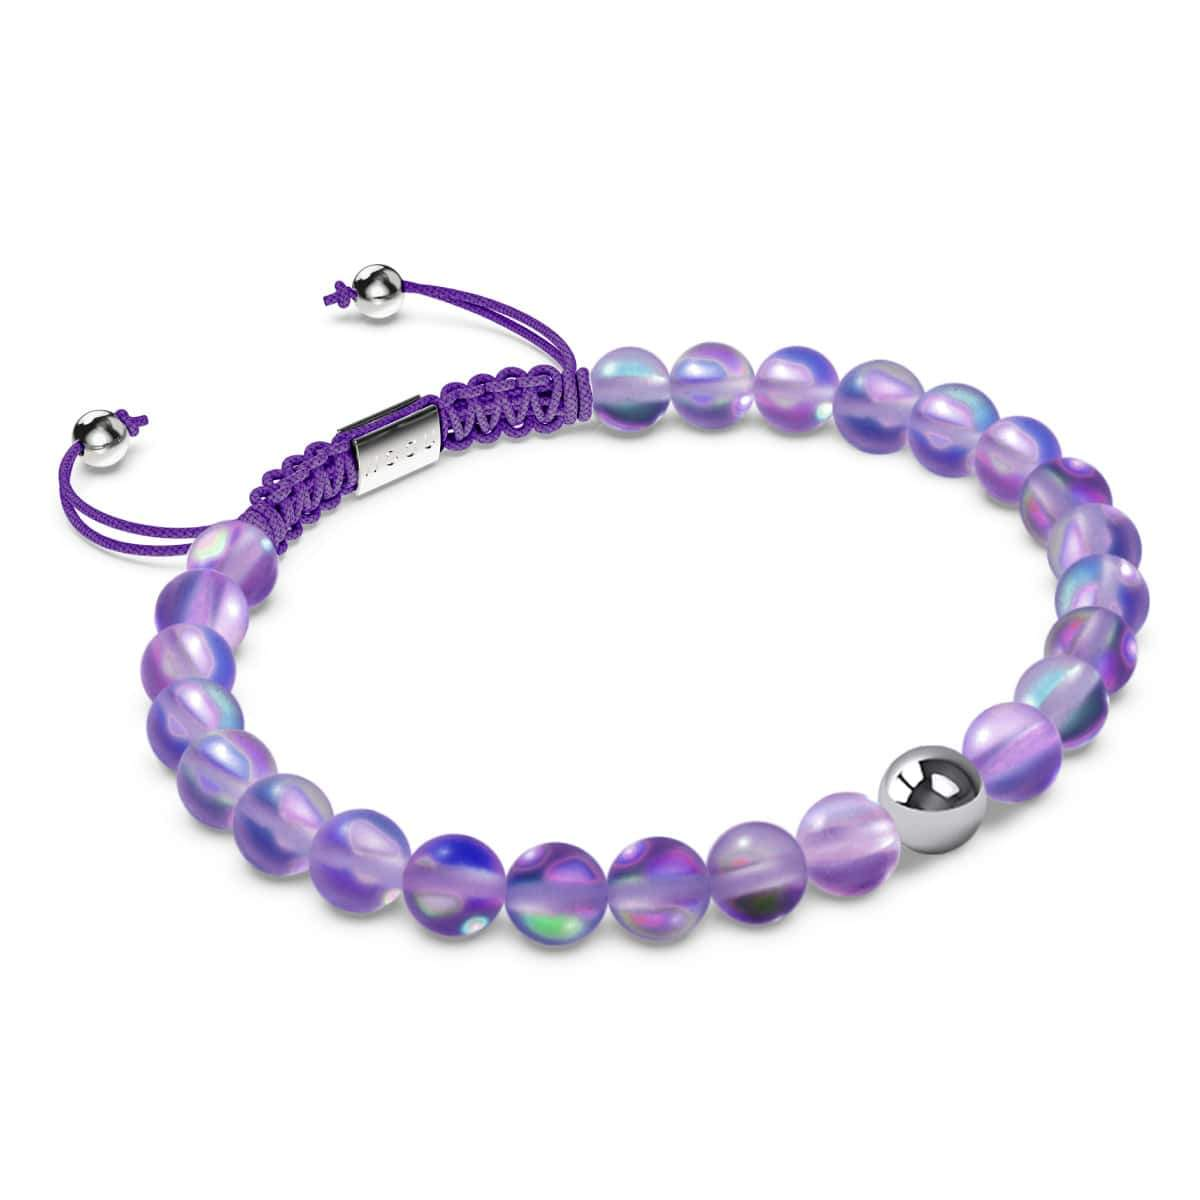 Violet | Silver | Mermaid Glass Macrame Bead Bracelet